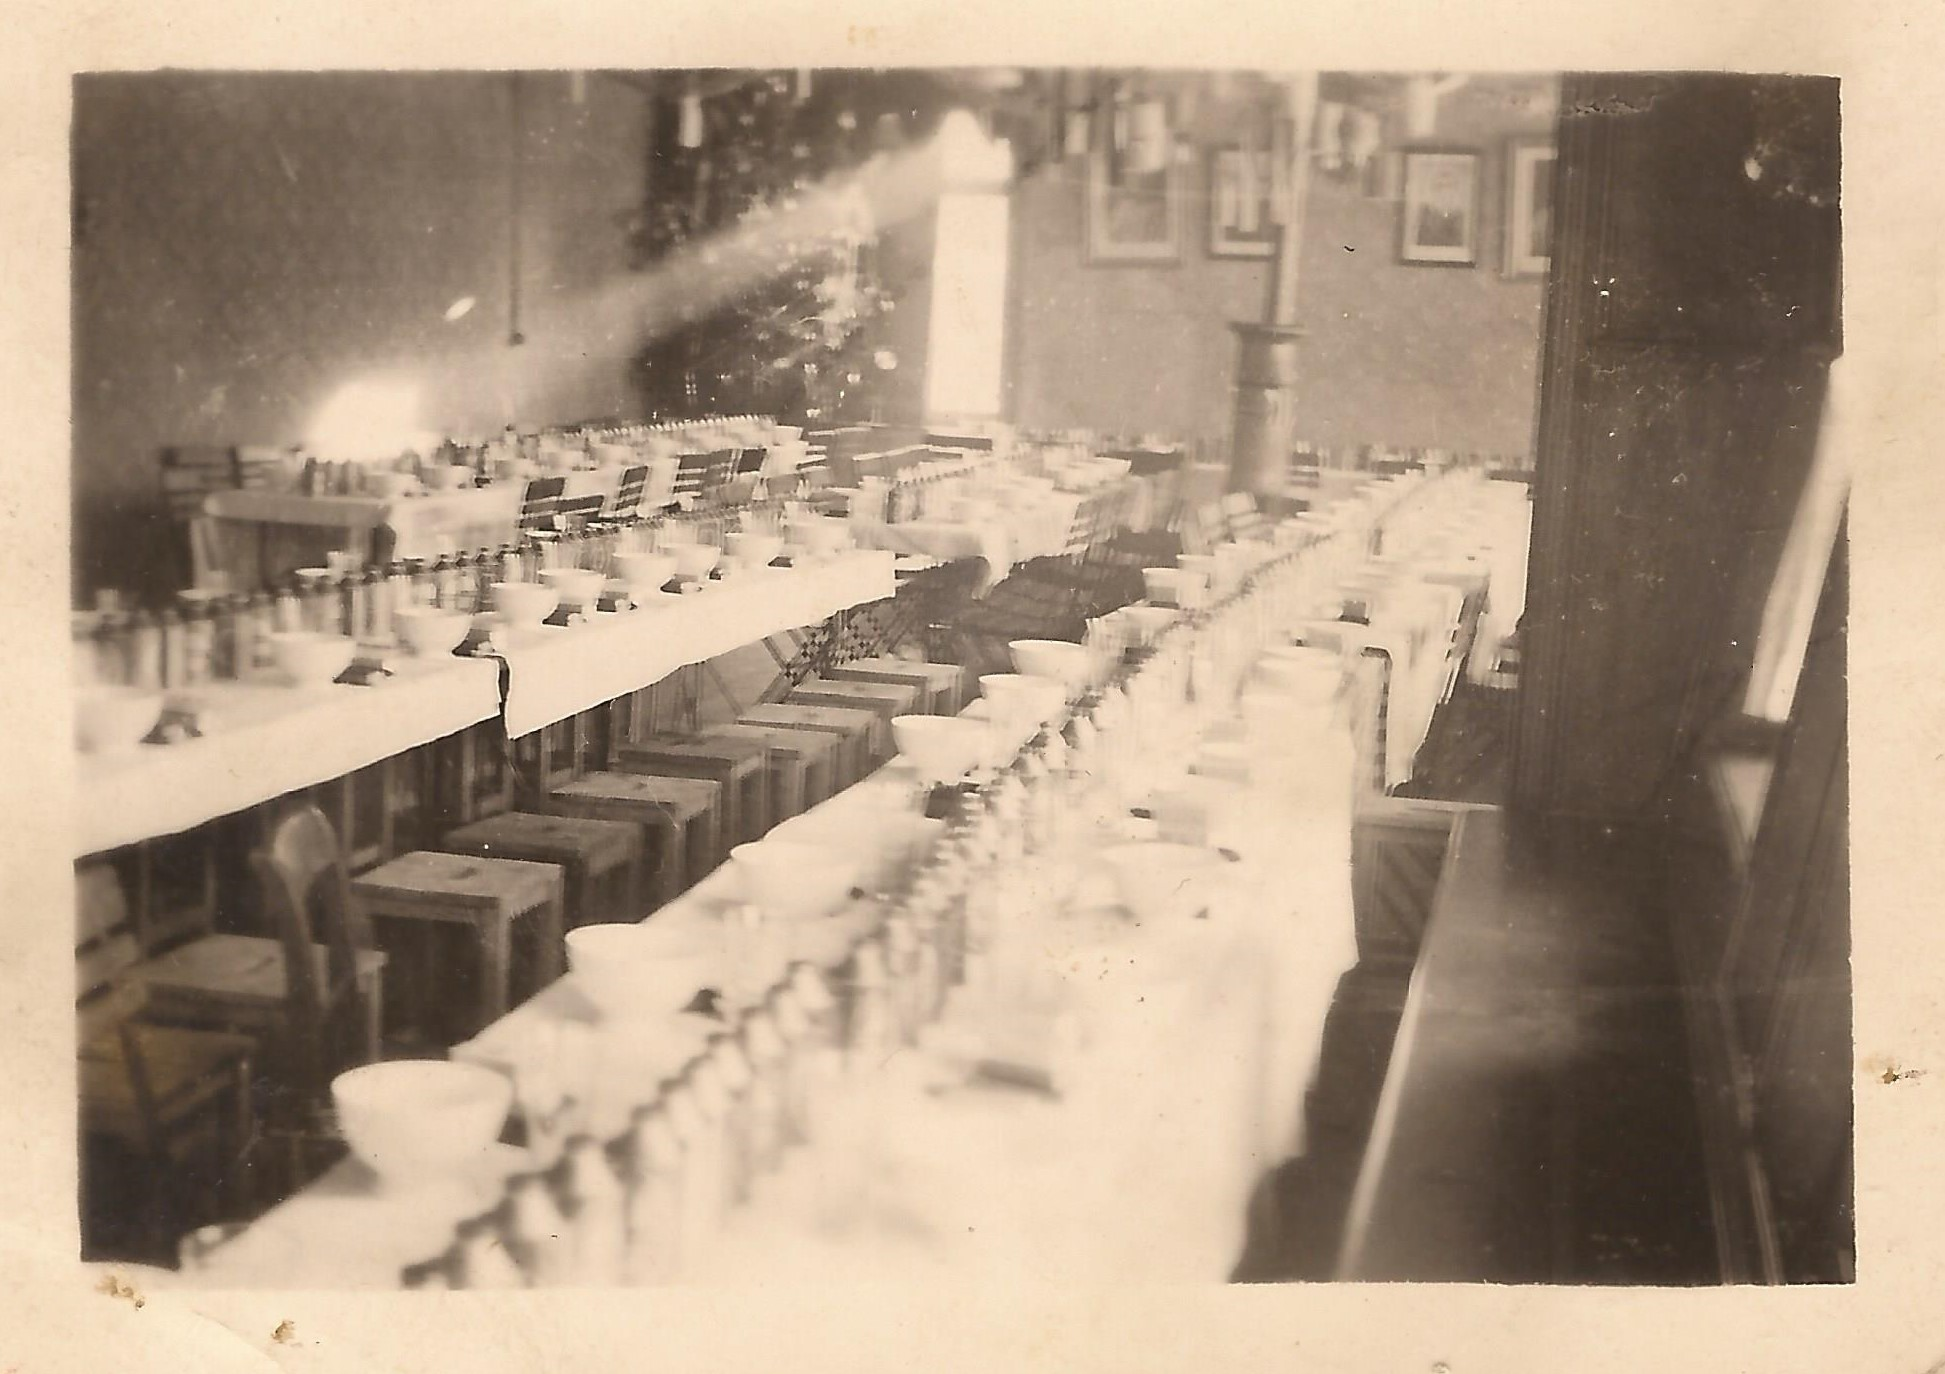 21 January 1945 - Christmas at Bree,  table ready for dinner, including Christmas tree and plenty of tins of English beer - Fruin Collection